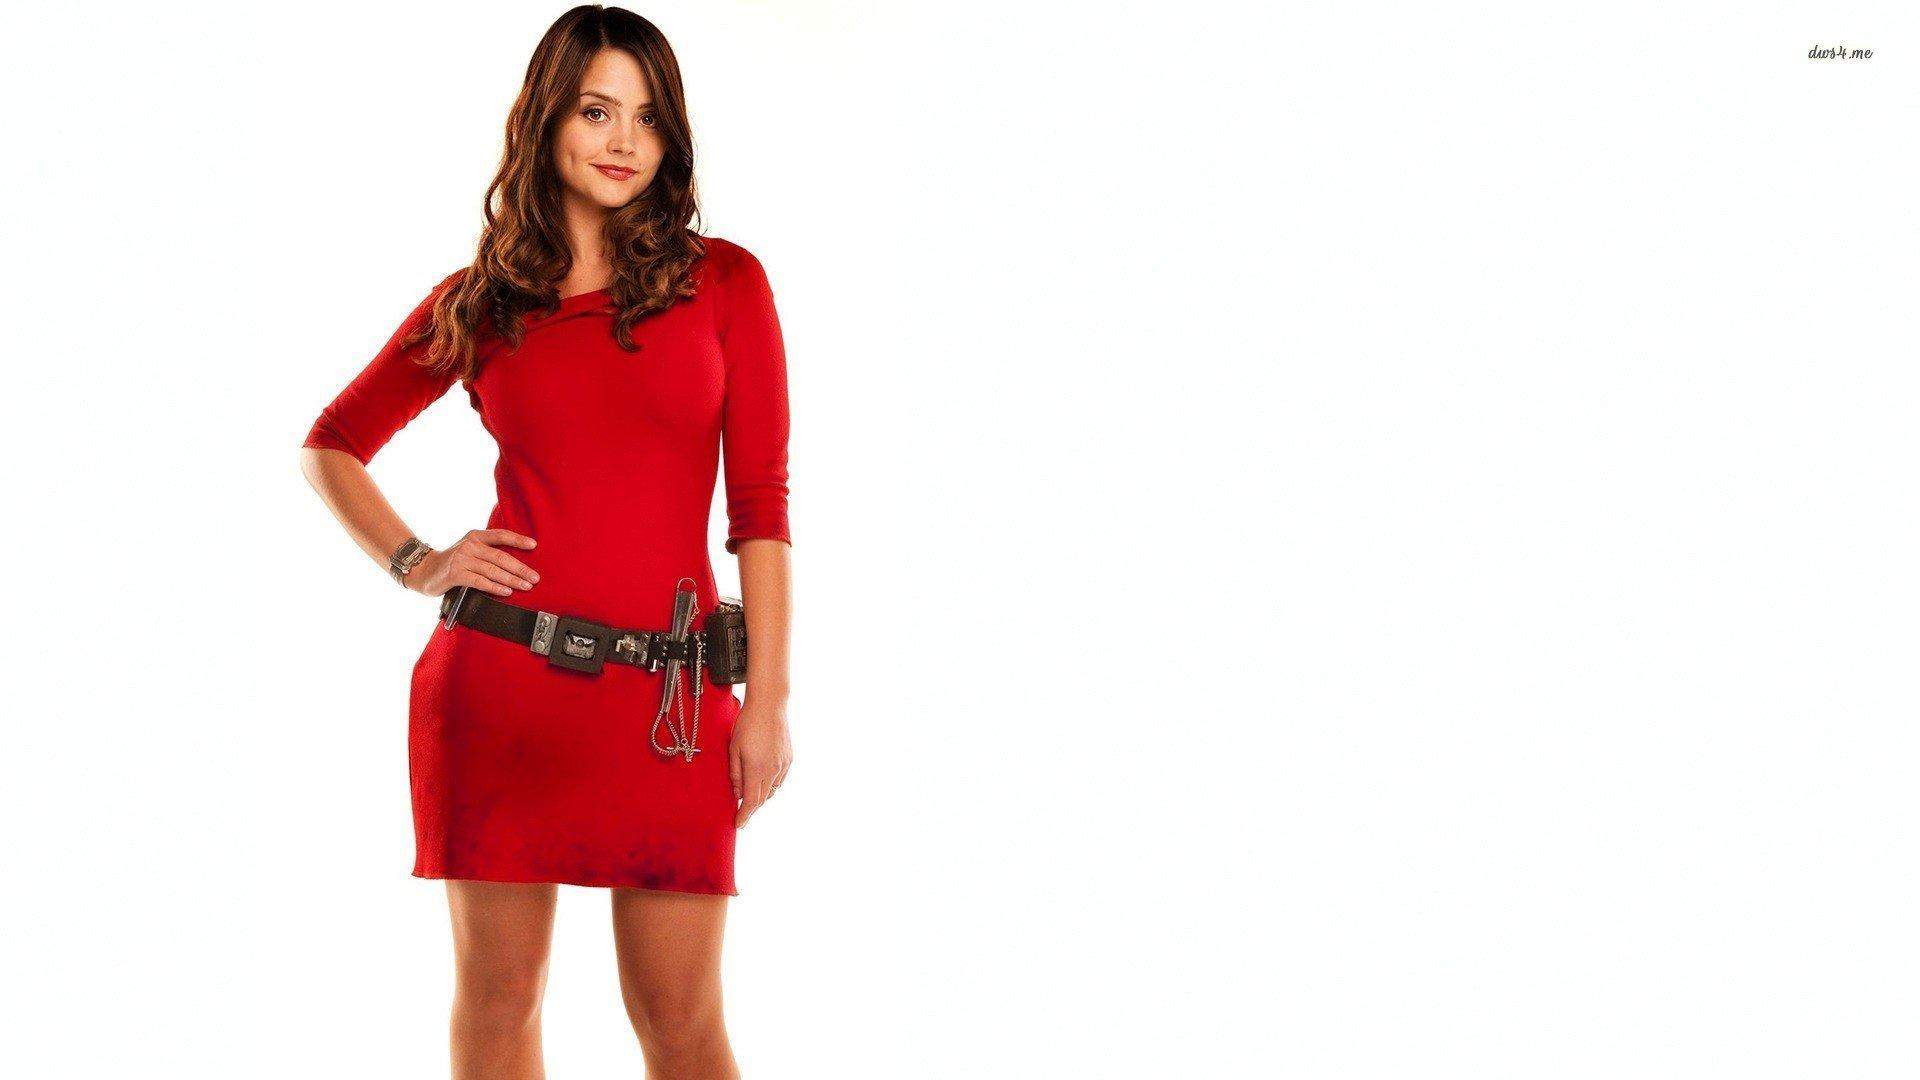 1920x1080 - Jenna-Louise Coleman Wallpapers 16